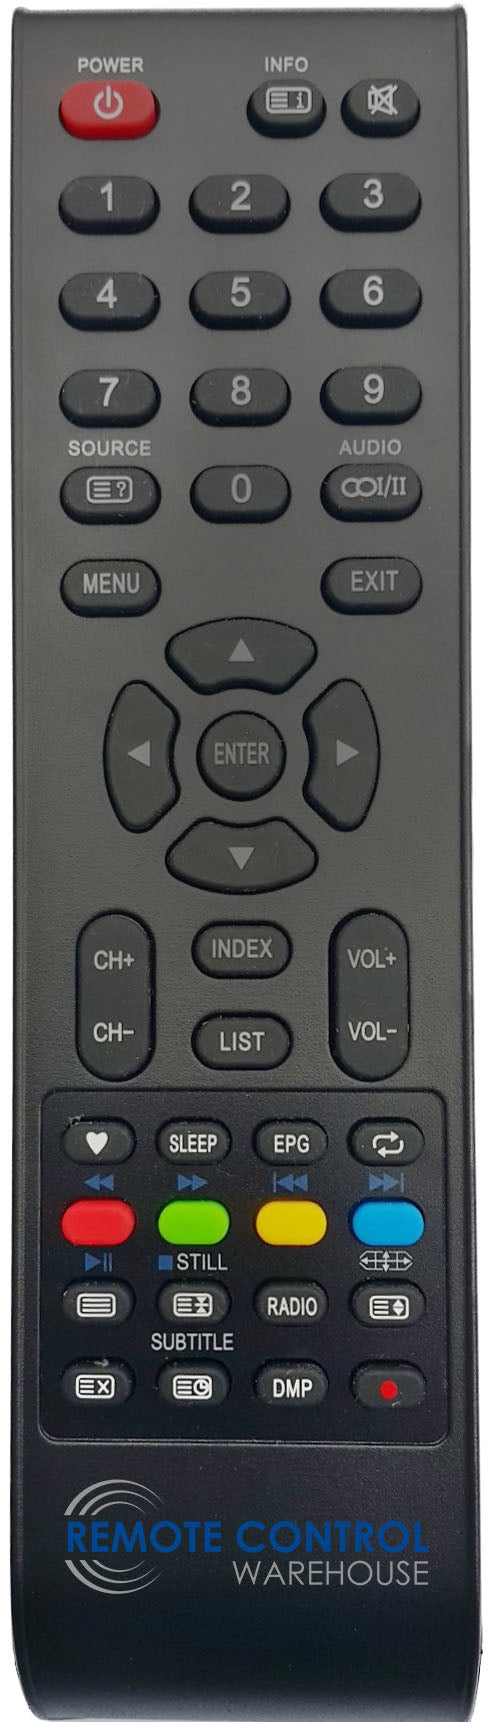 KOGAN ORIGINAL REMOTE CONTROL -  KALED40XXXTA LED TV